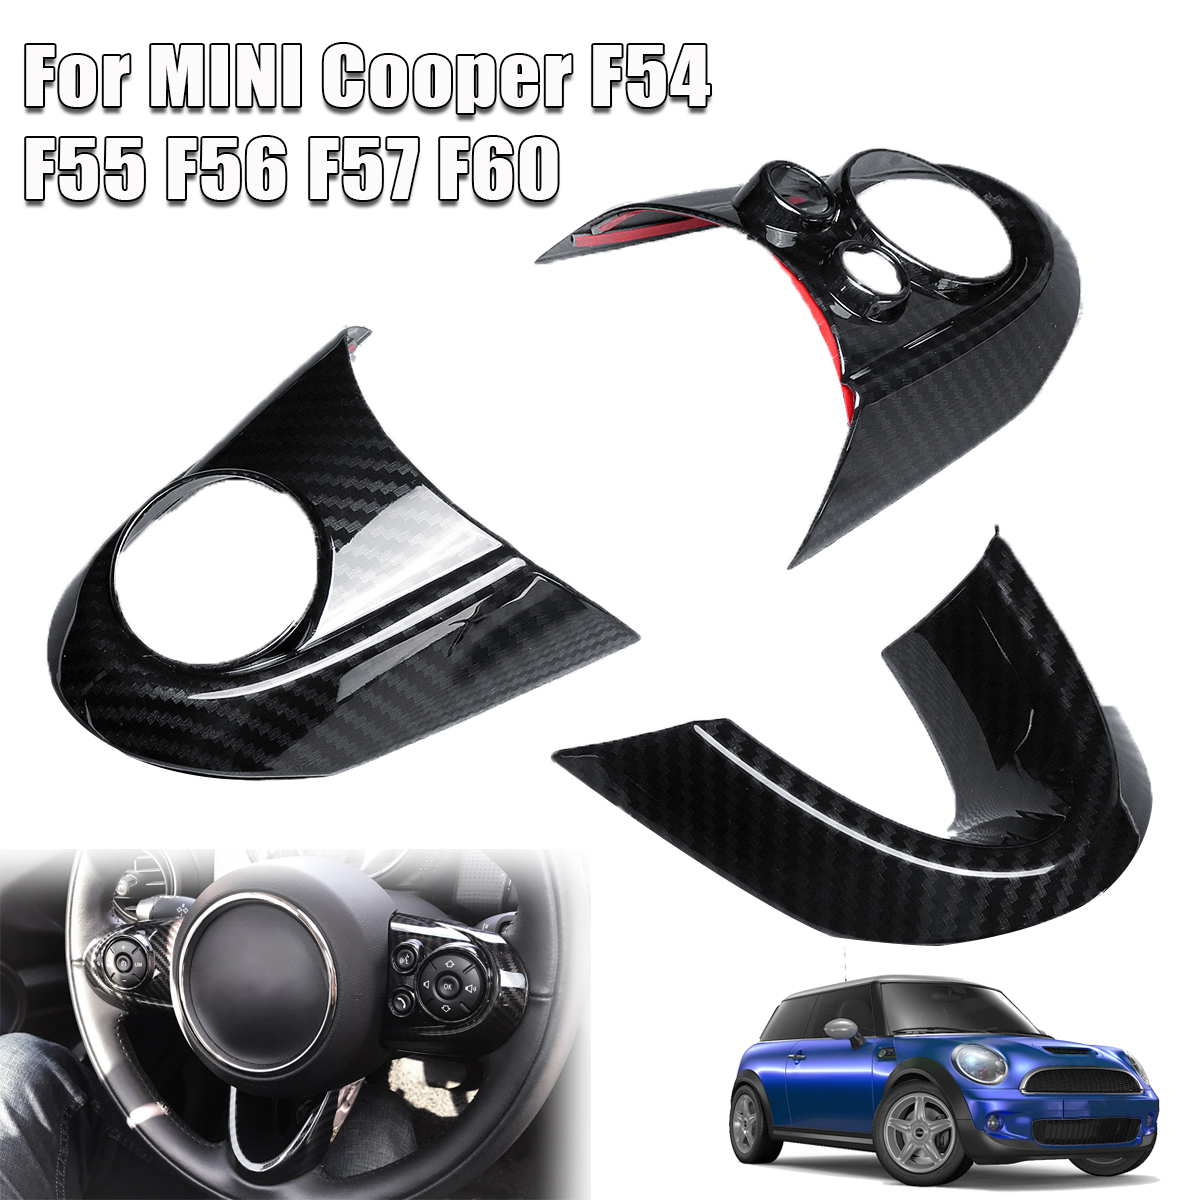 3pcs Car Steering Wheel Covers For MINI Cooper F54 F55 F56 F57 F60 Carbon Fiber Style Auto Interior Accessories Sticker Cover